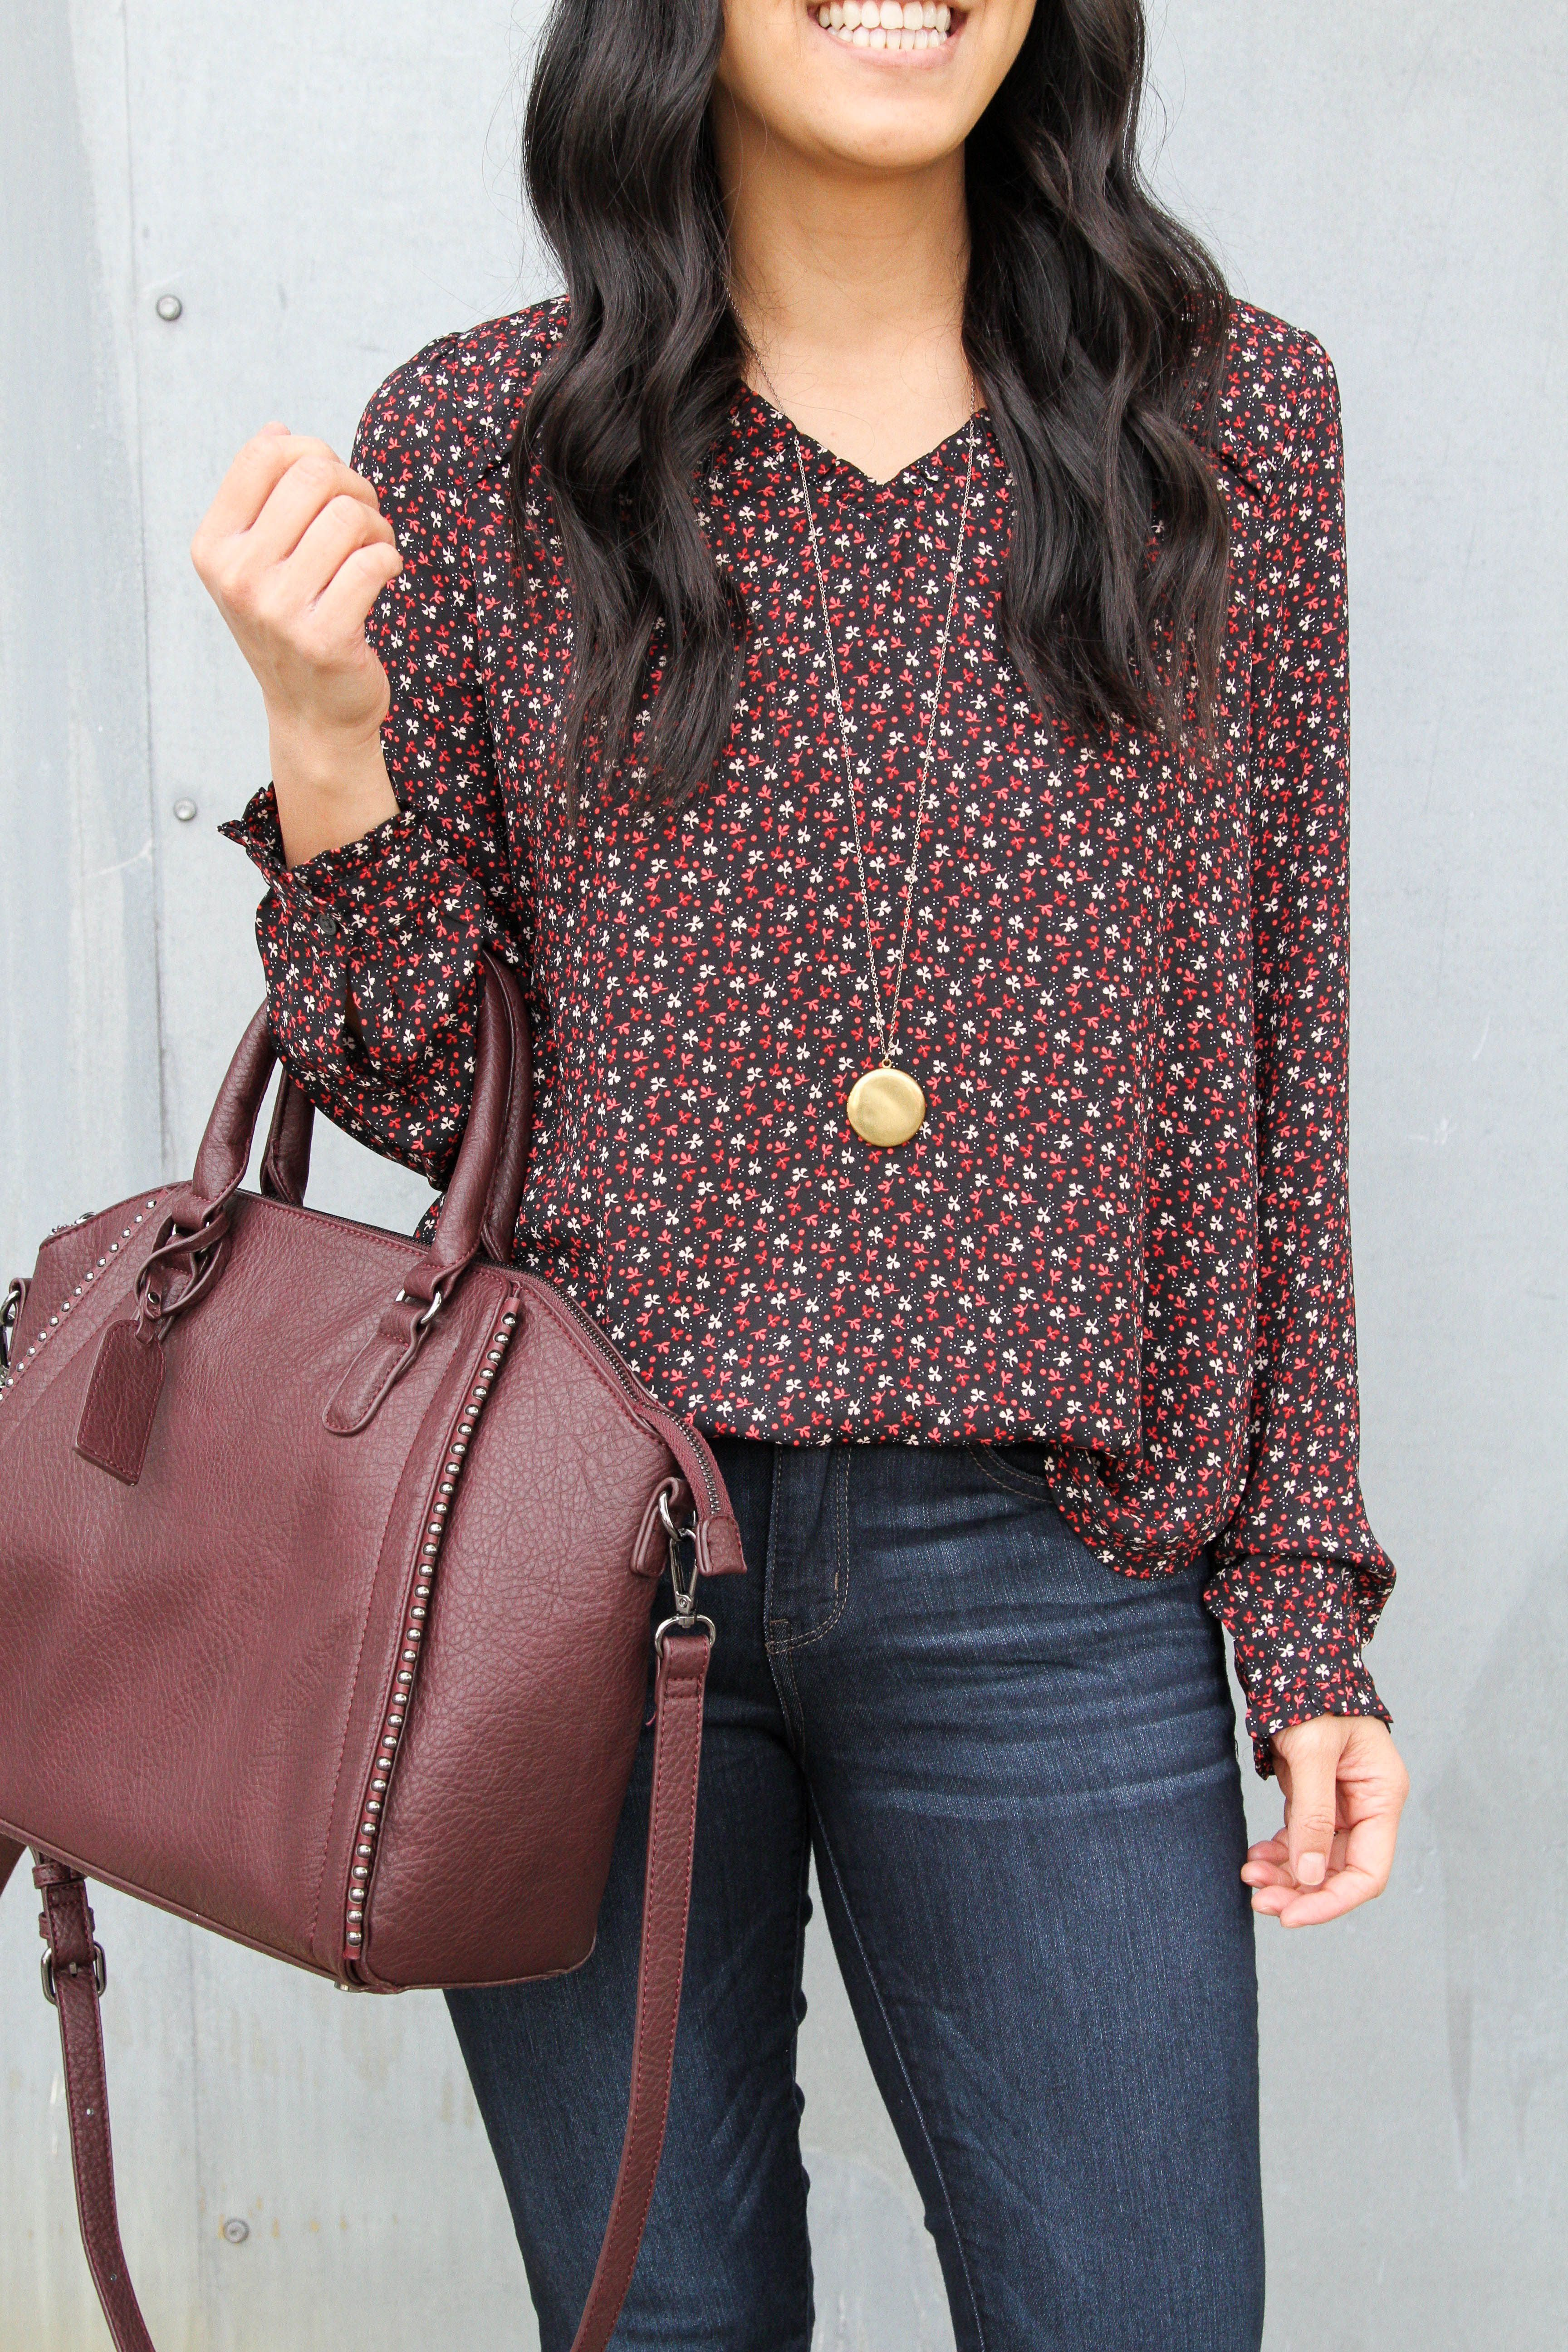 382bce3f1da96 6 Outfits With a Printed Top for Work, Polished Casual Outfits ...